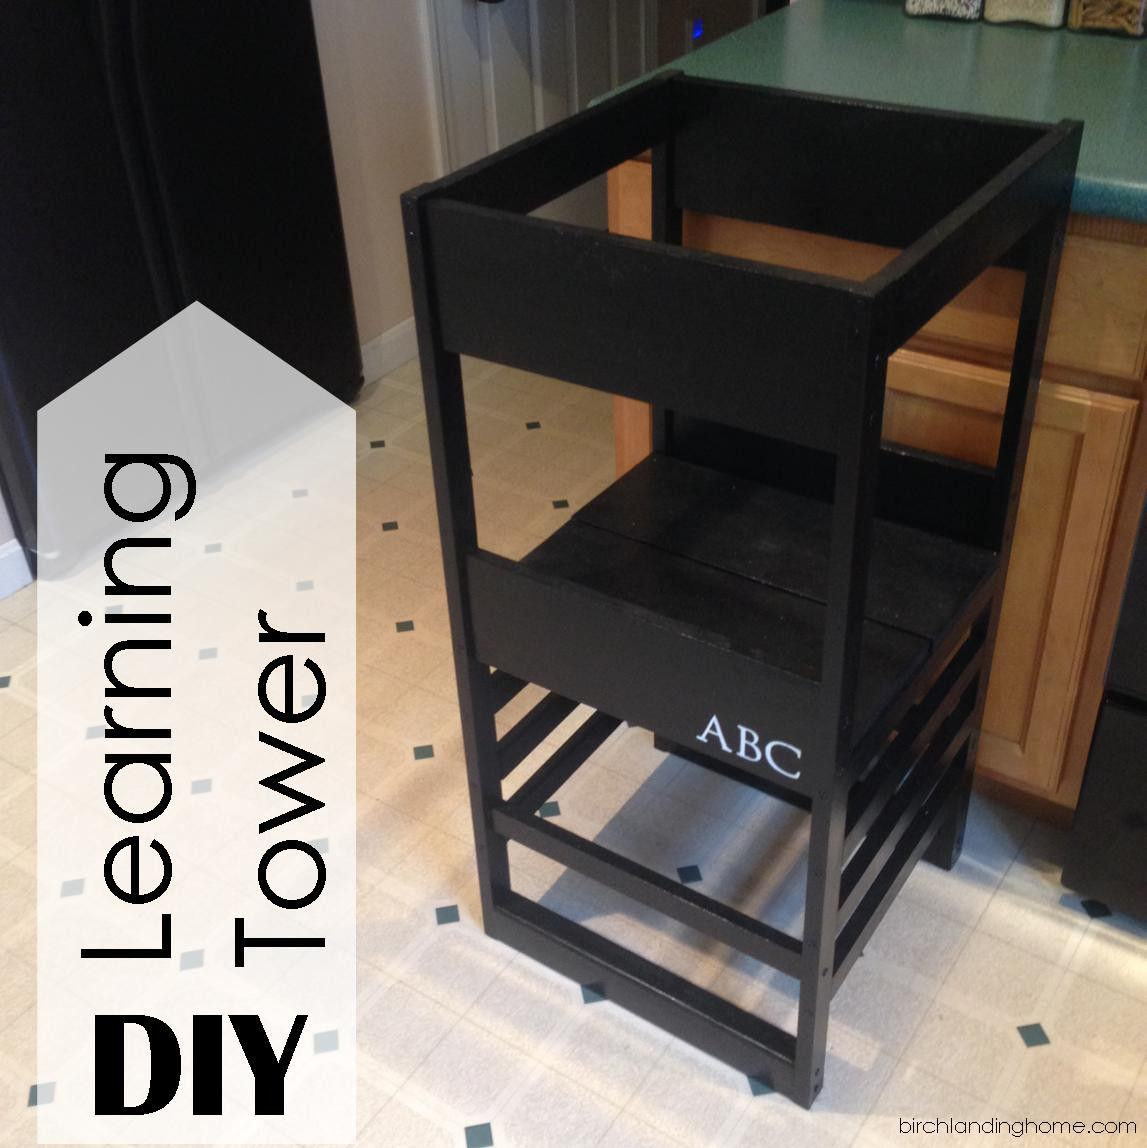 Best ideas about DIY Learning Tower . Save or Pin Hometalk Now.